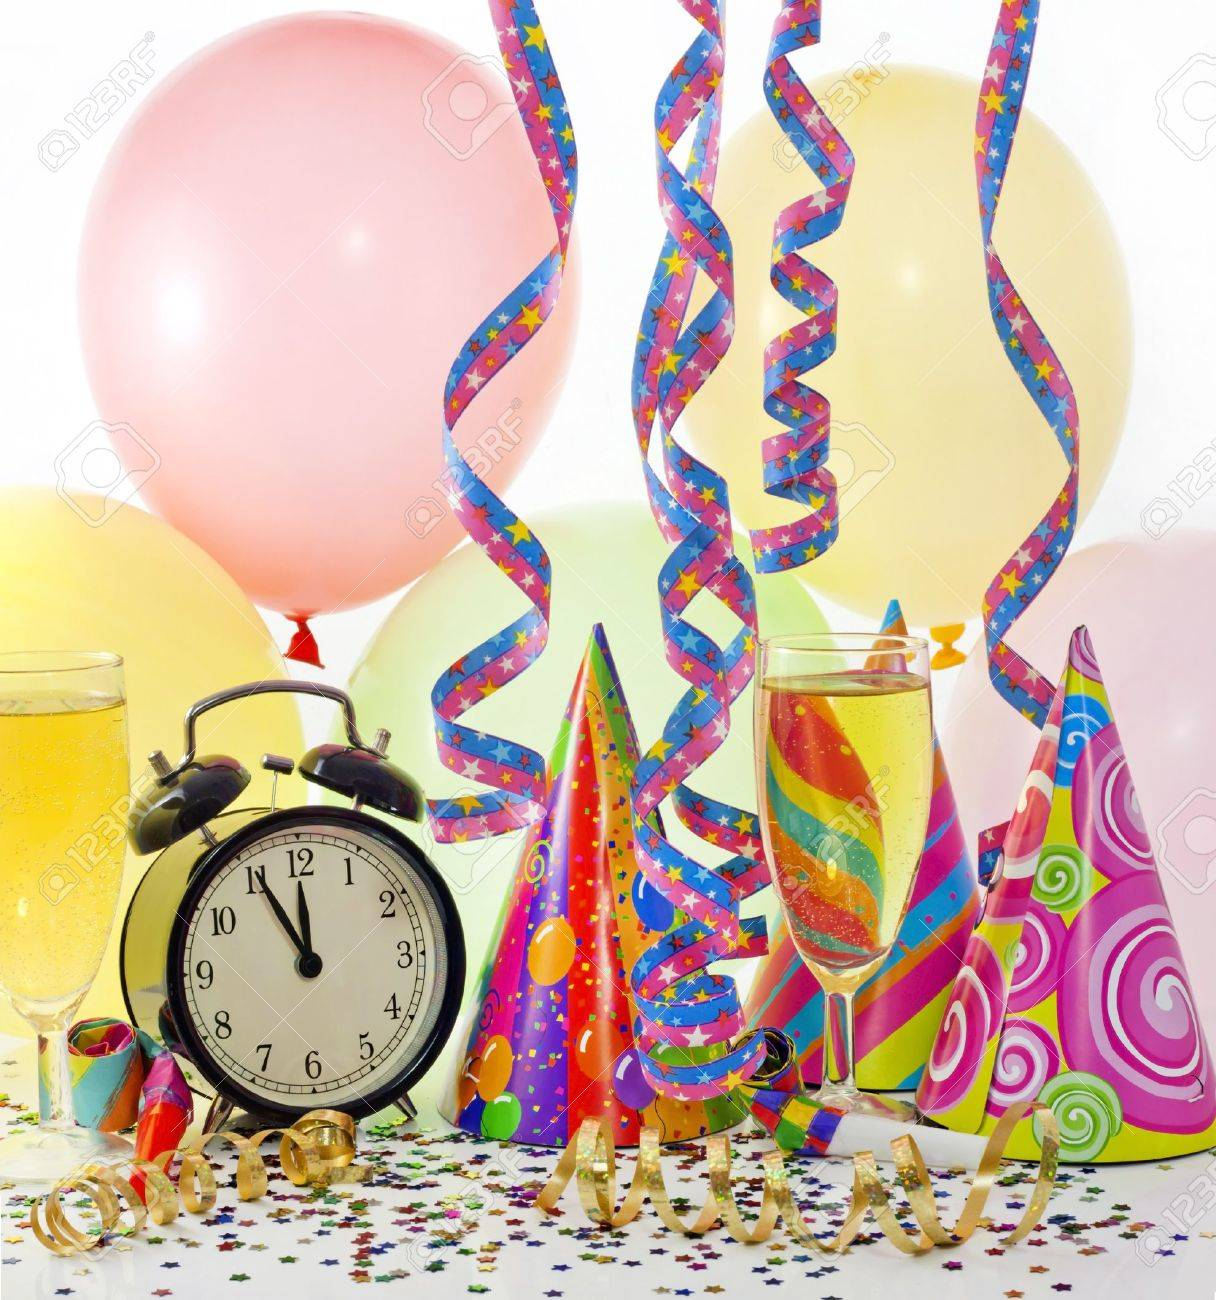 New year party with clock balloons champagne and clock Stock Photo - 14342610